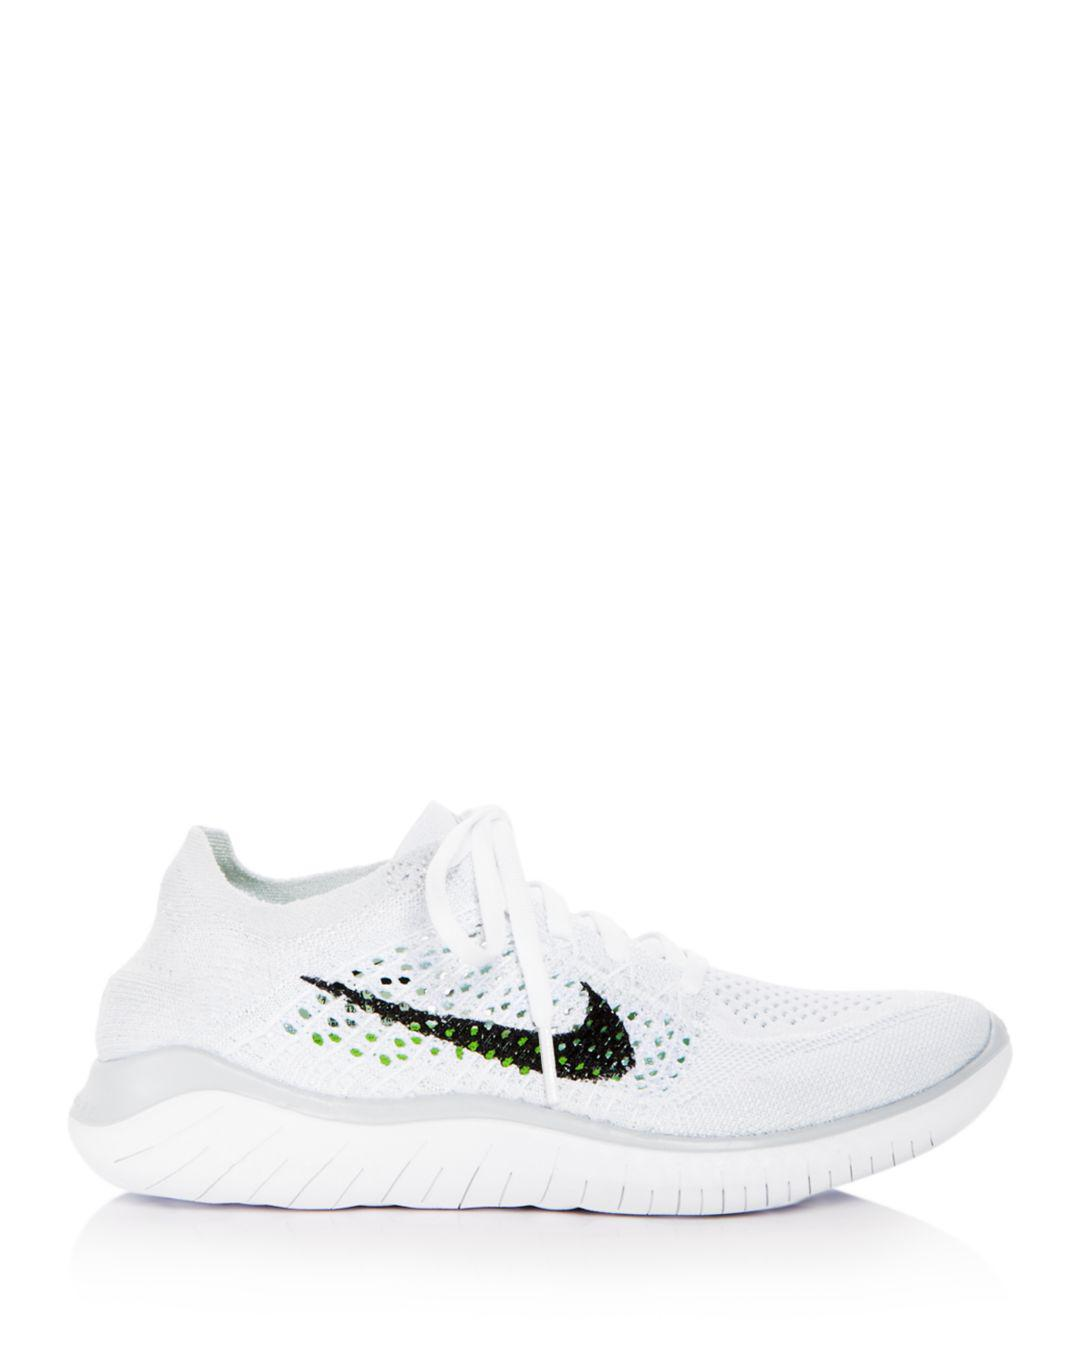 6c2c6873bb62 Lyst - Nike Women s Free Rn Flyknit 2018 Lace Up Sneakers in White - Save  30%